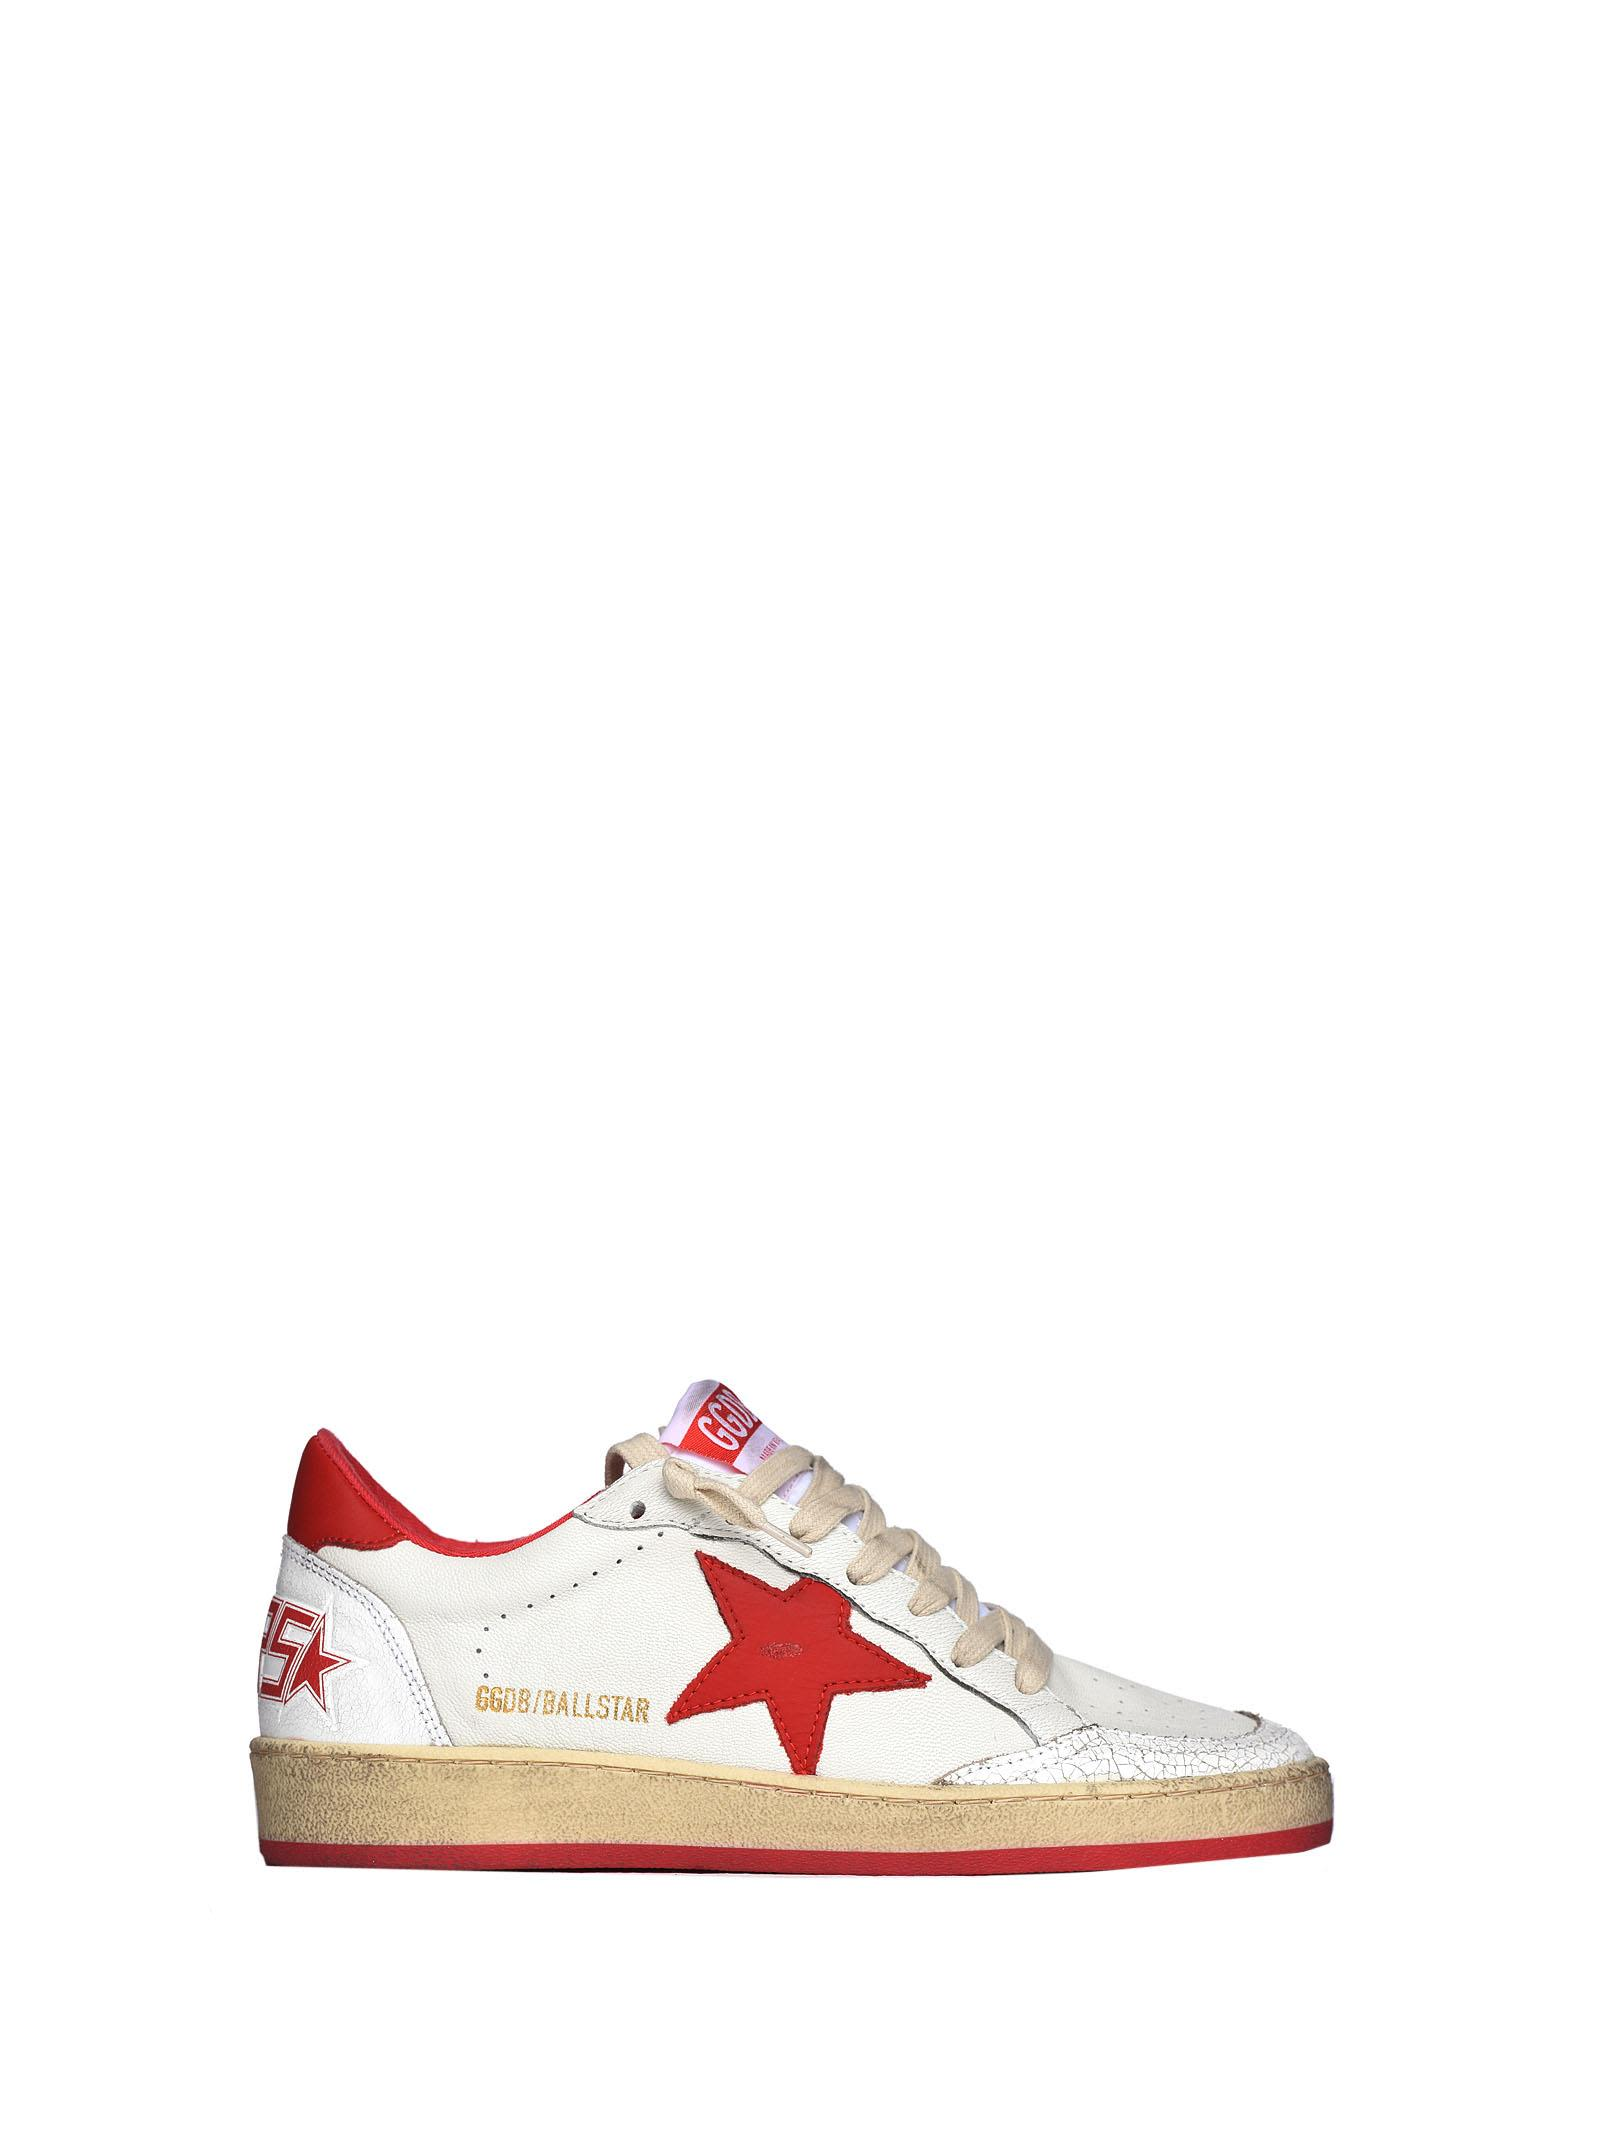 Golden Goose Ball Star Sneakers In White And Red Calf Leather